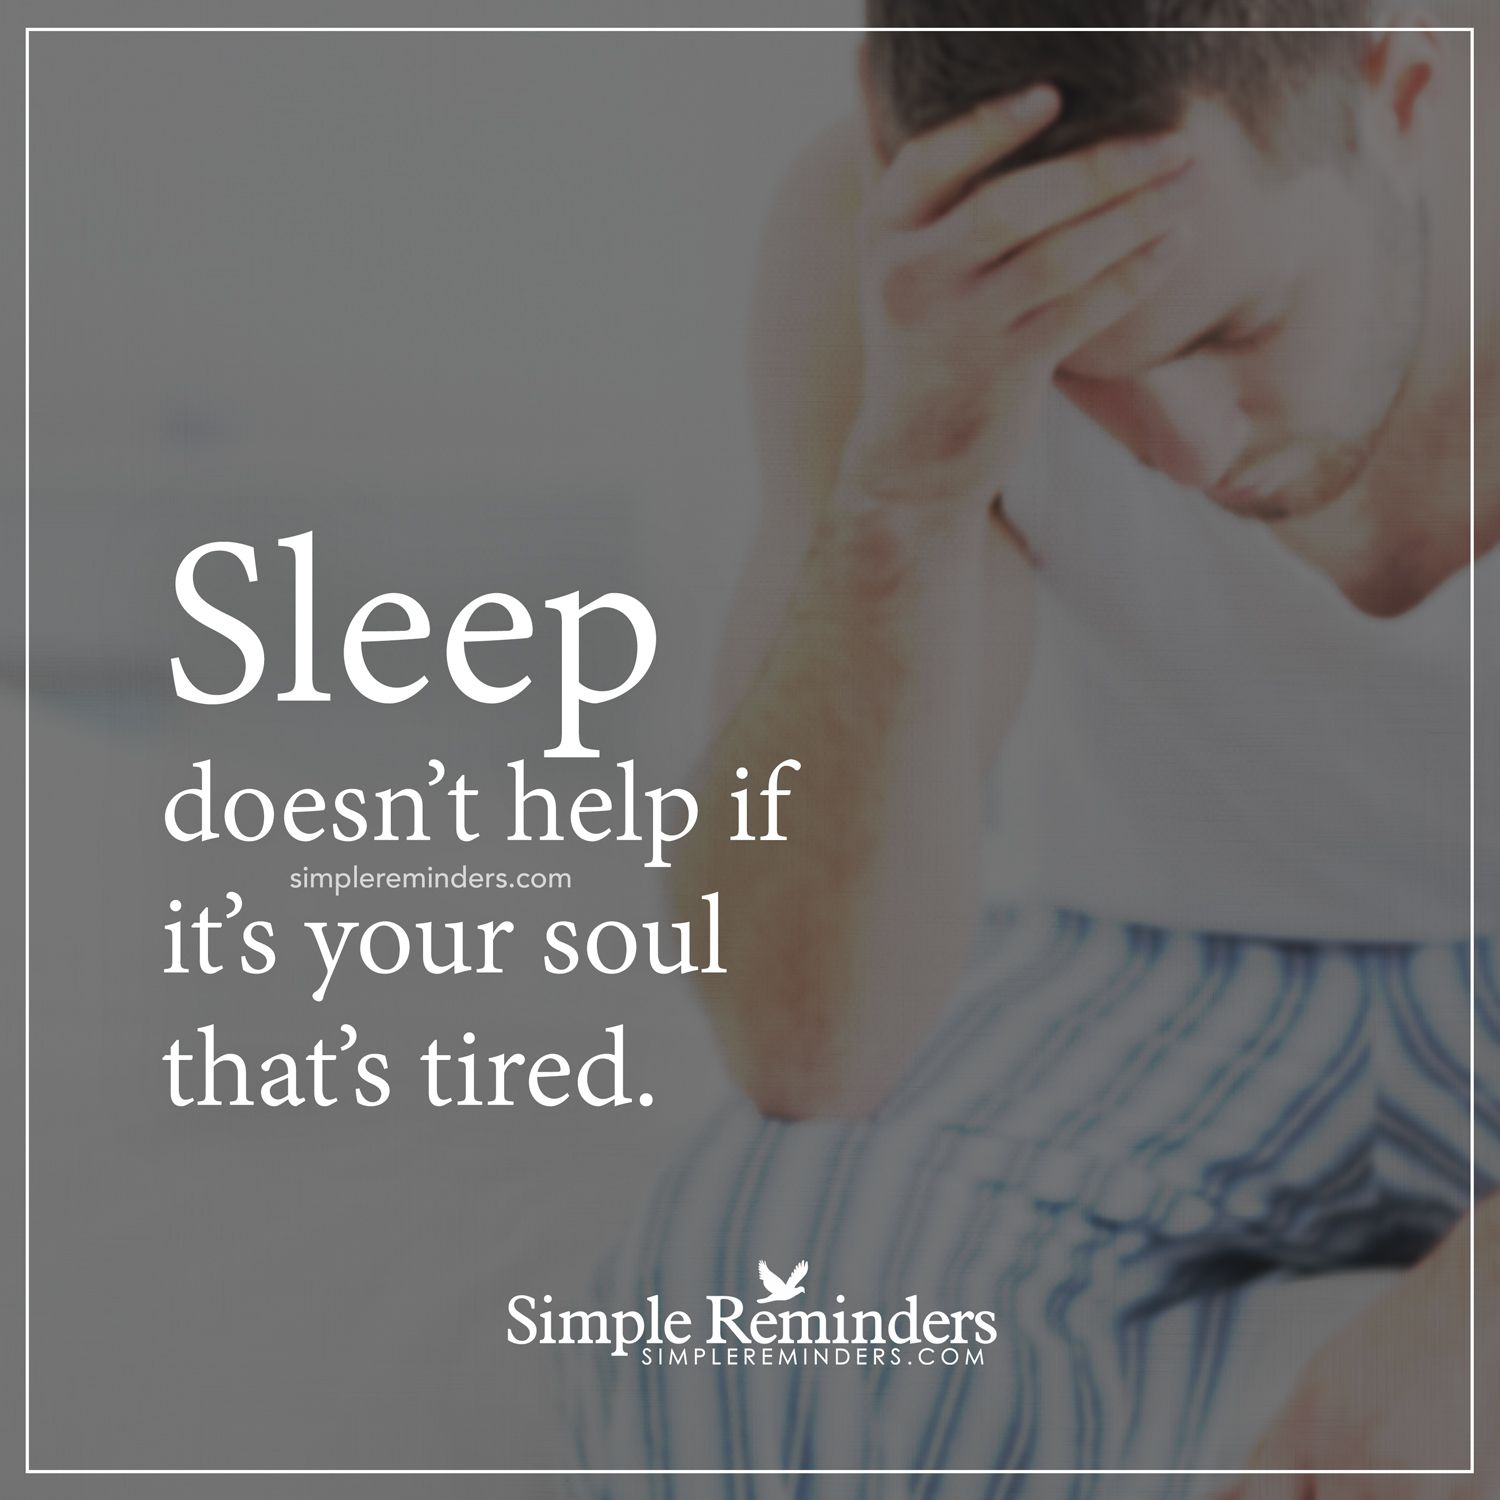 A tired soul Sleep doesn't help if it's your soul that's tired. — Unknown Author